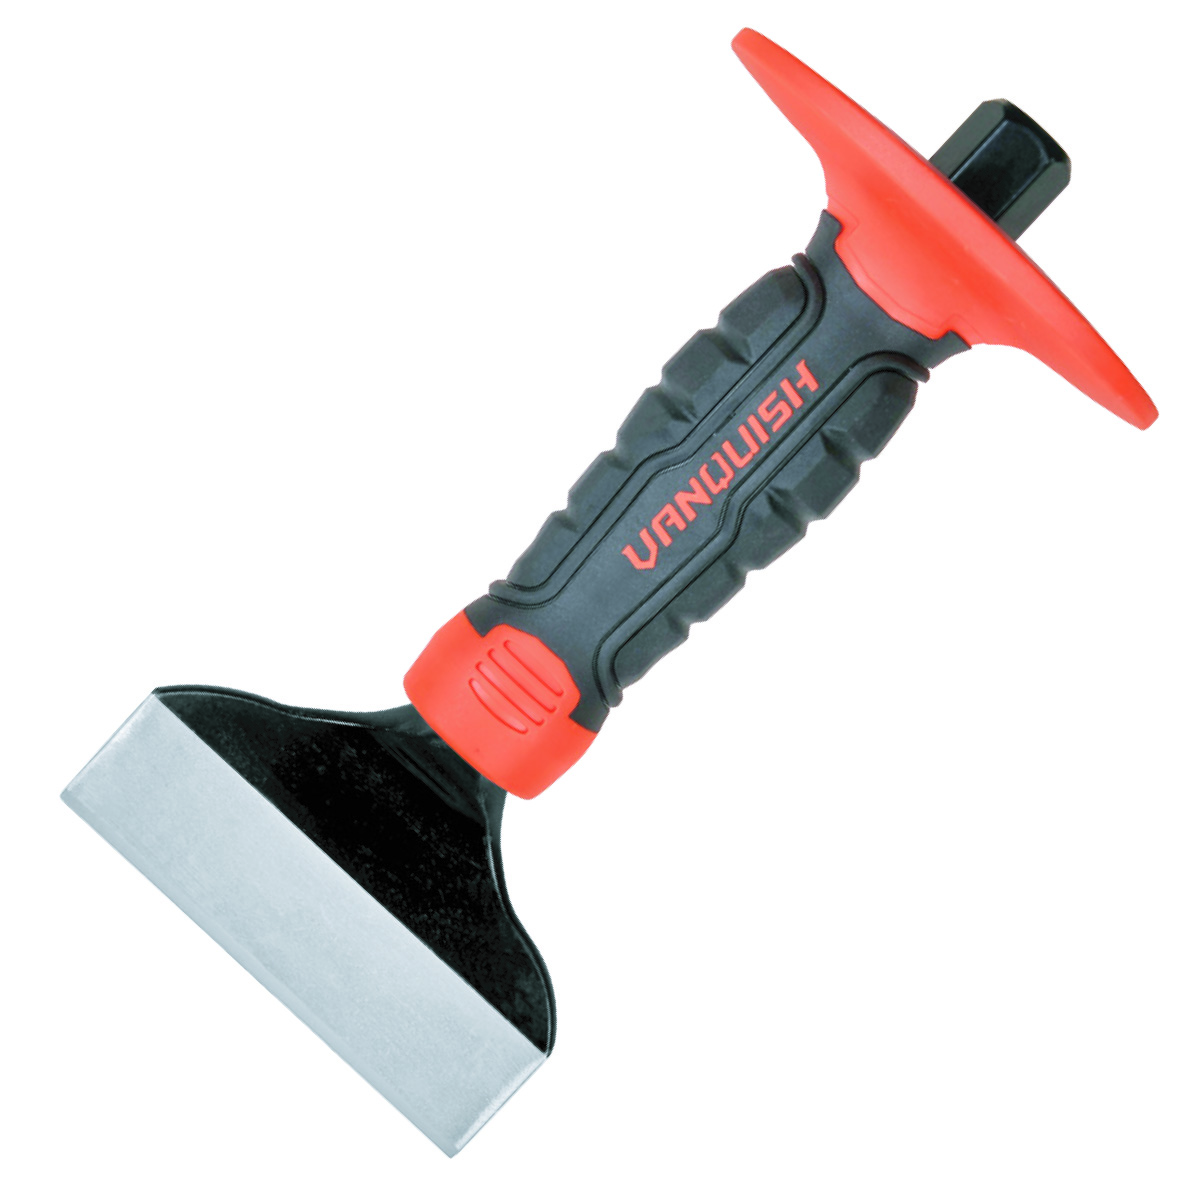 BRICK CHISEL WITH GUARD-CRMO BLADE